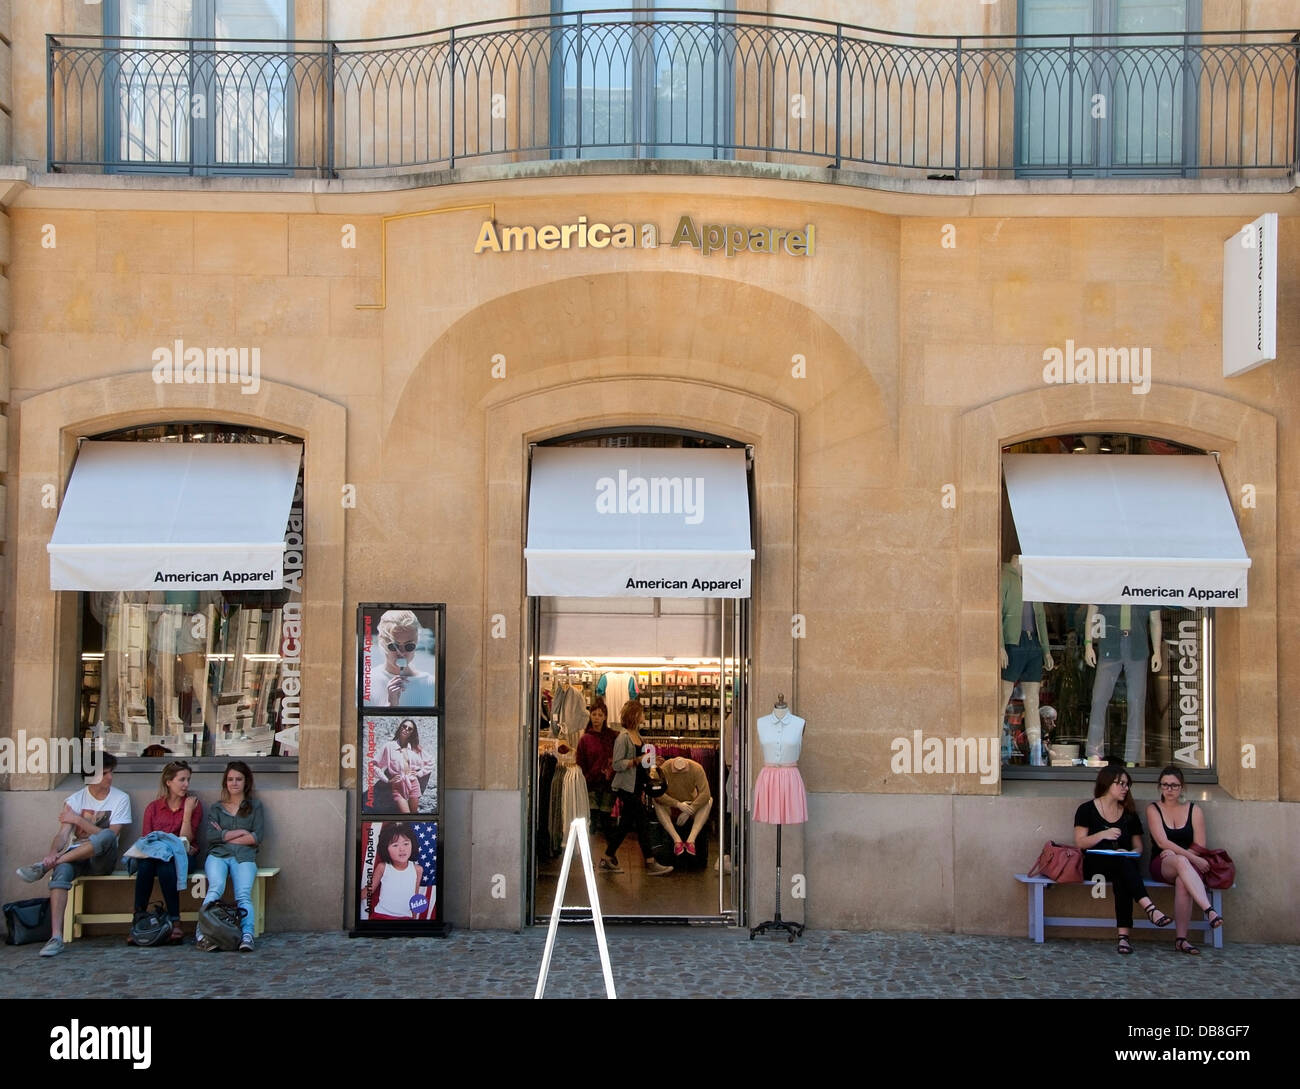 American Apparel fashion shop Aix En Provence France French old town city center - Stock Image